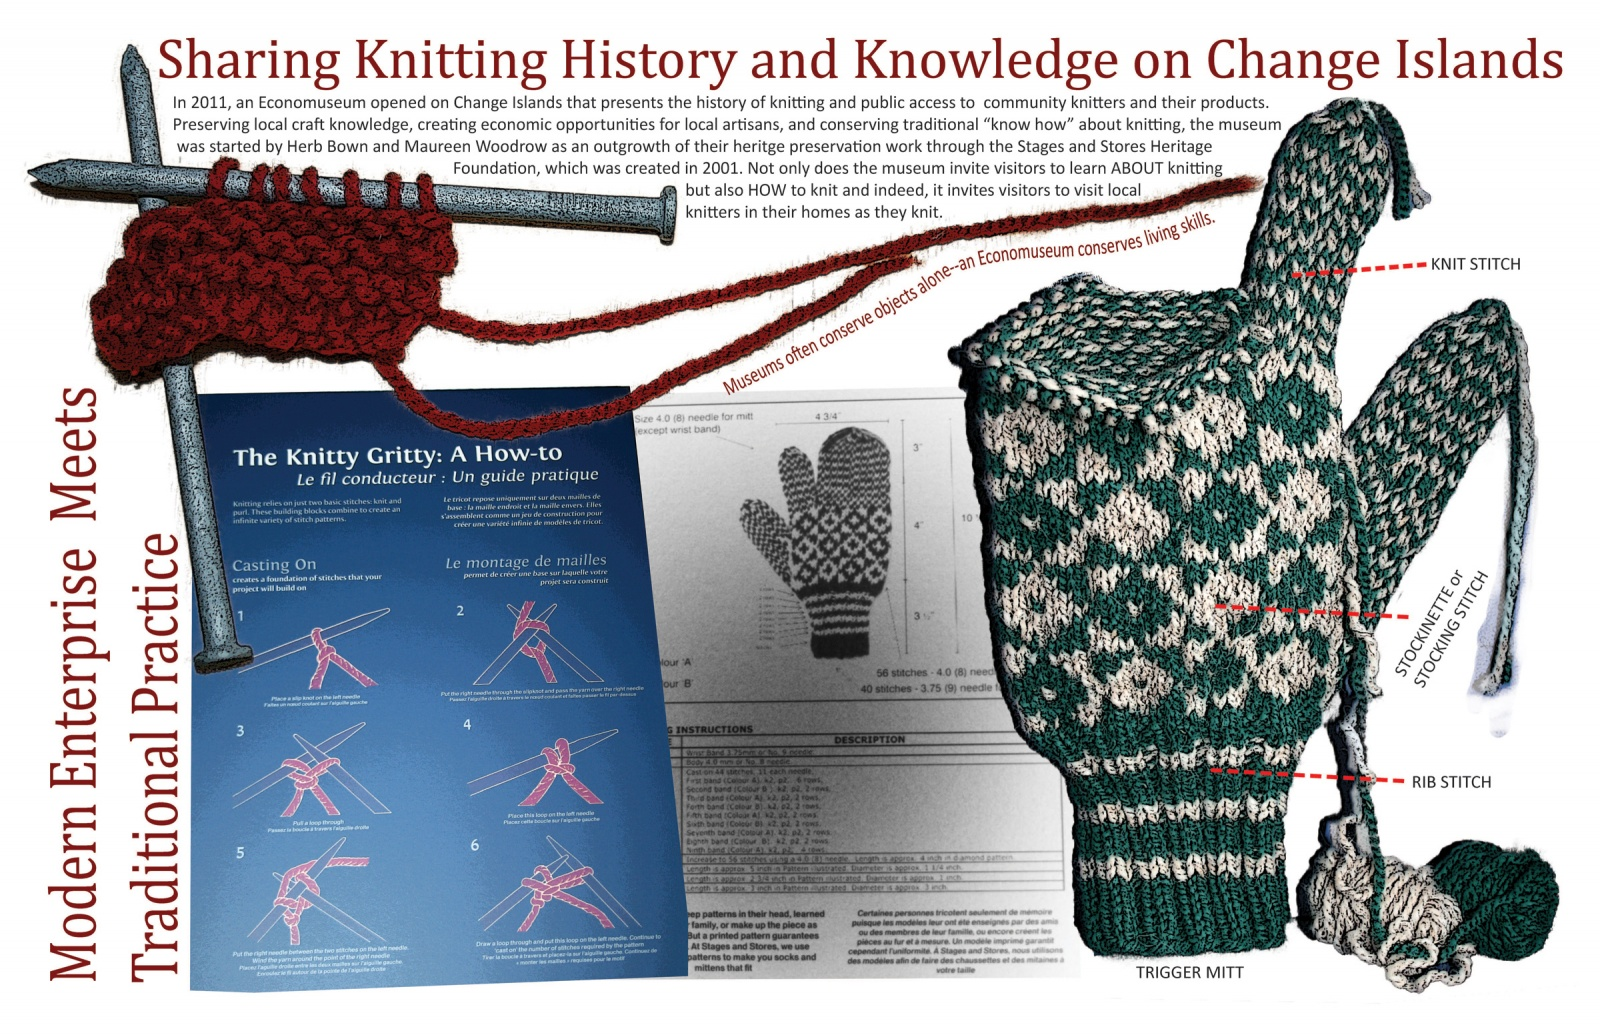 Sharing Knitting History and Knowledge on Change Islands